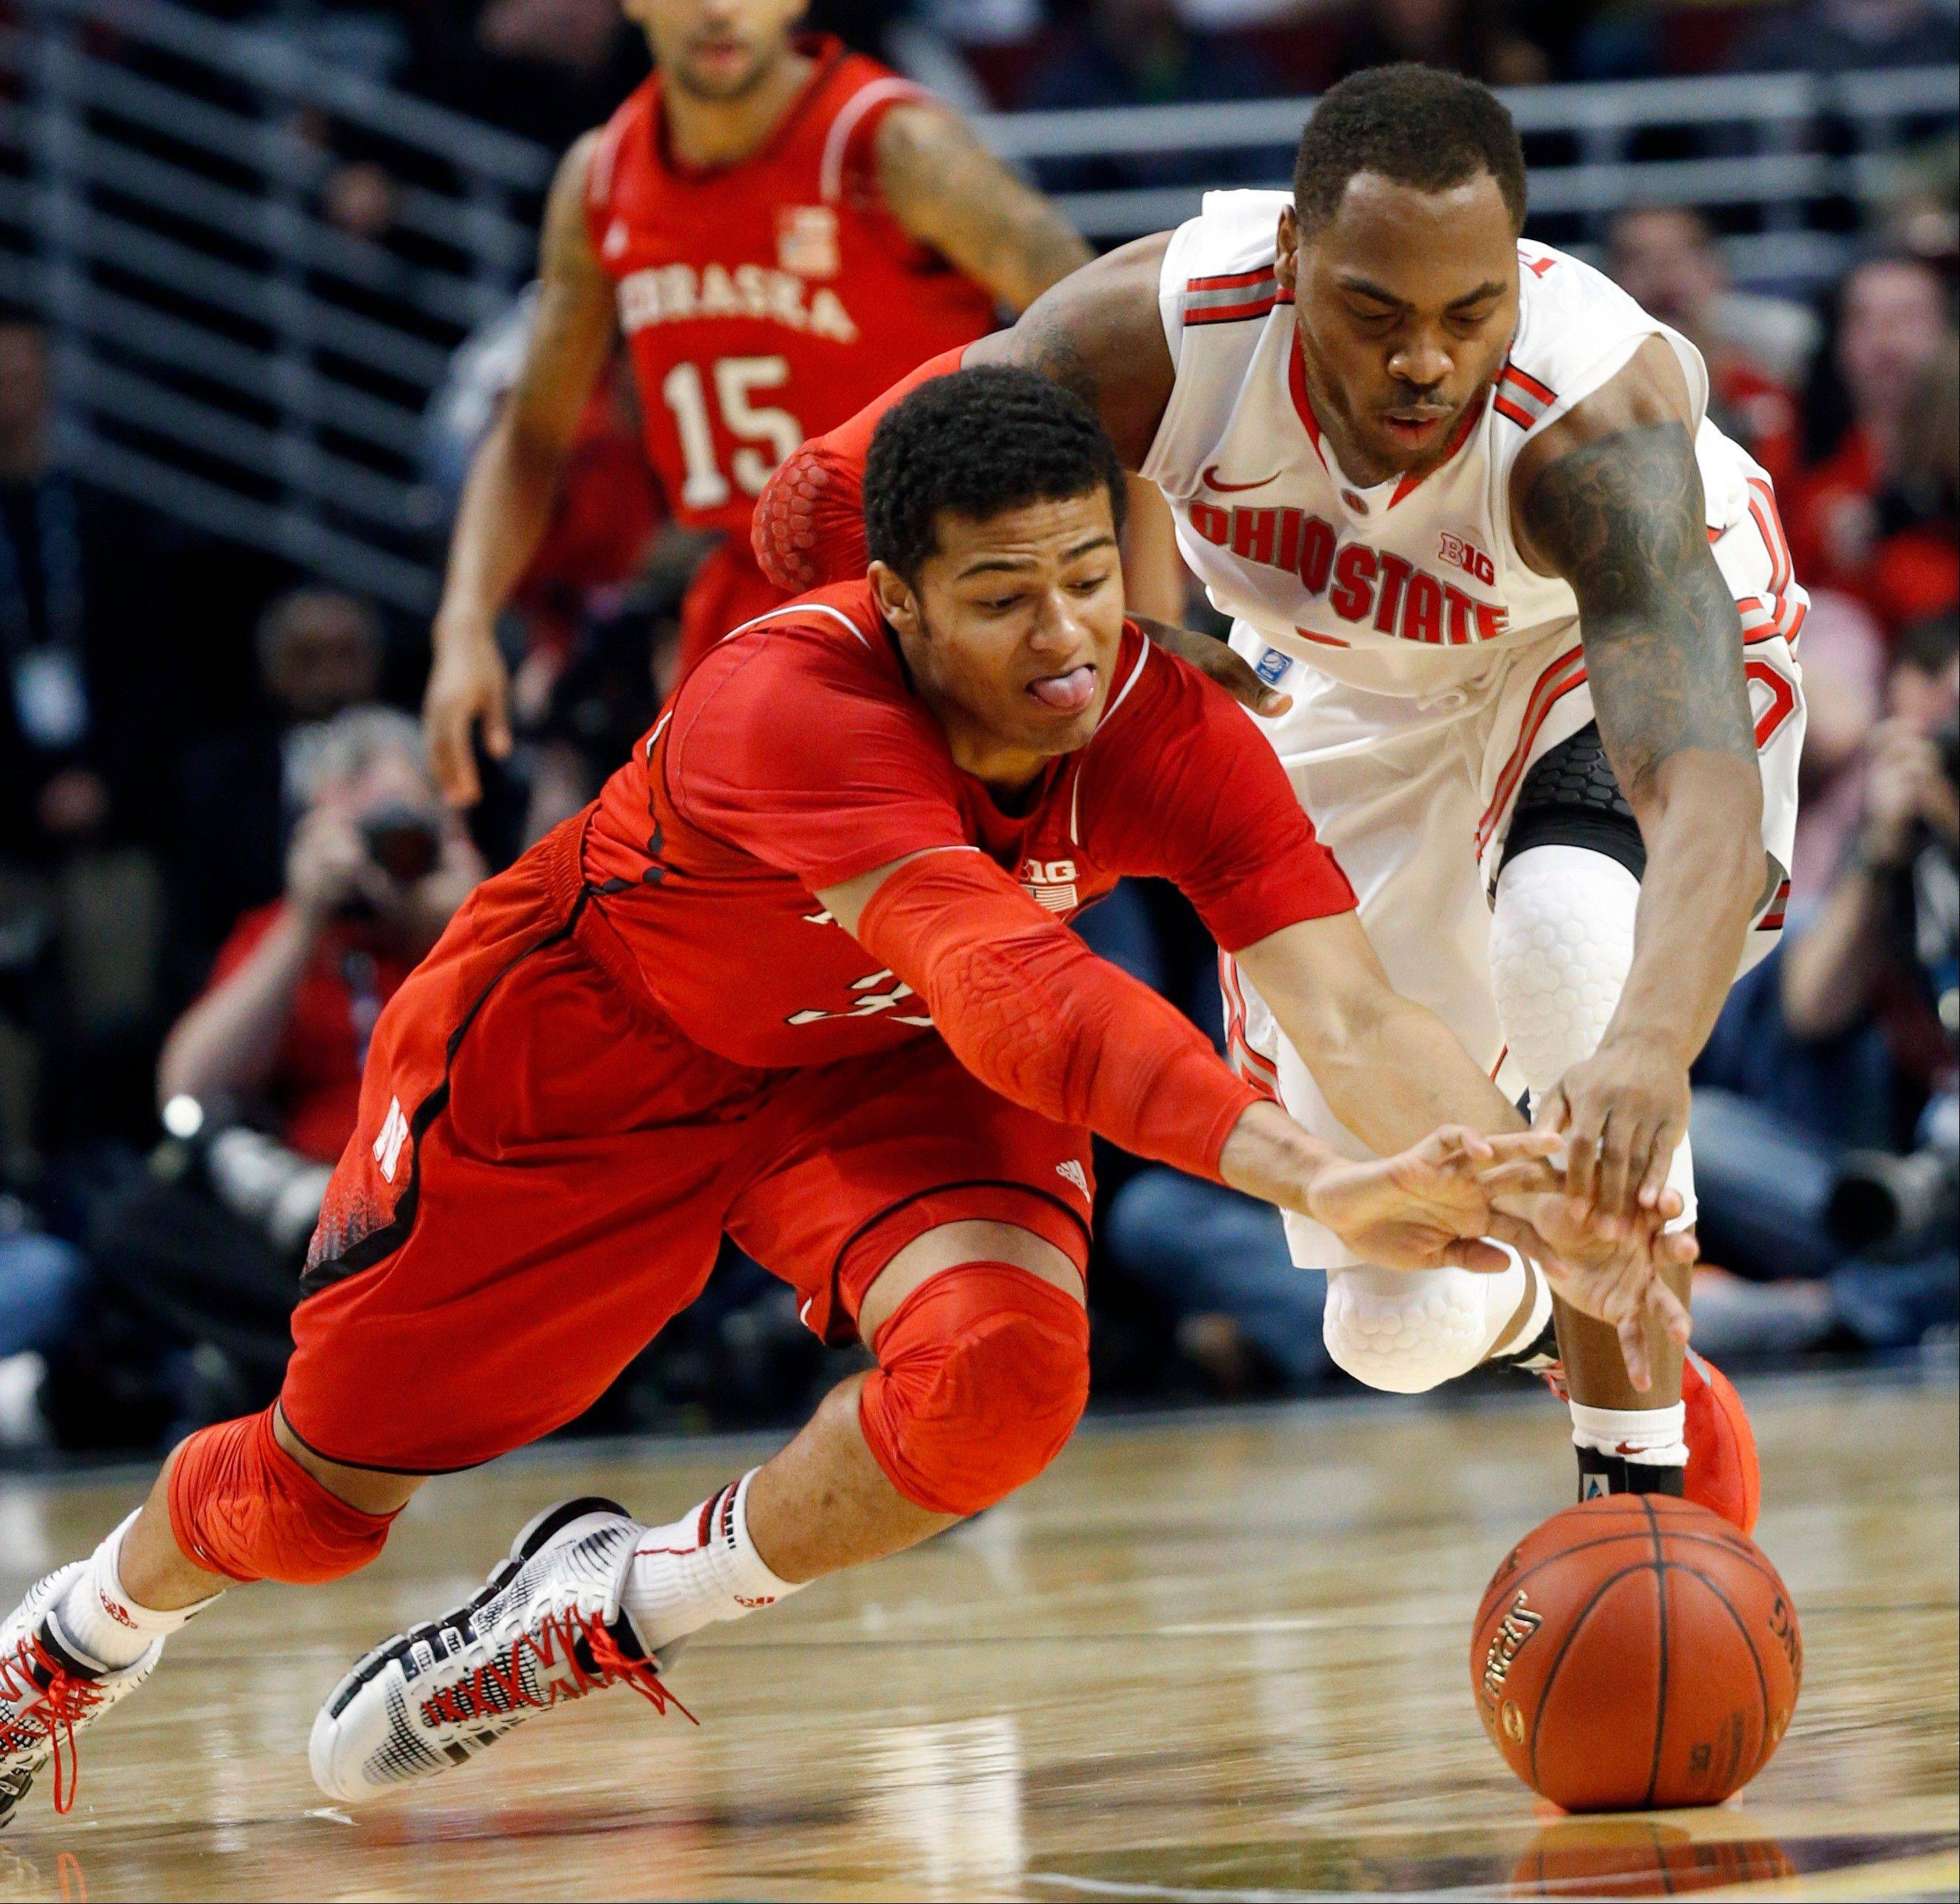 Nebraska's Shavon Shields and Ohio State's Deshaun Thomas battle for a loose ball during the second half of an NCAA college basketball game at the Big Ten tournament Friday, March 15, 2013, in Chicago.